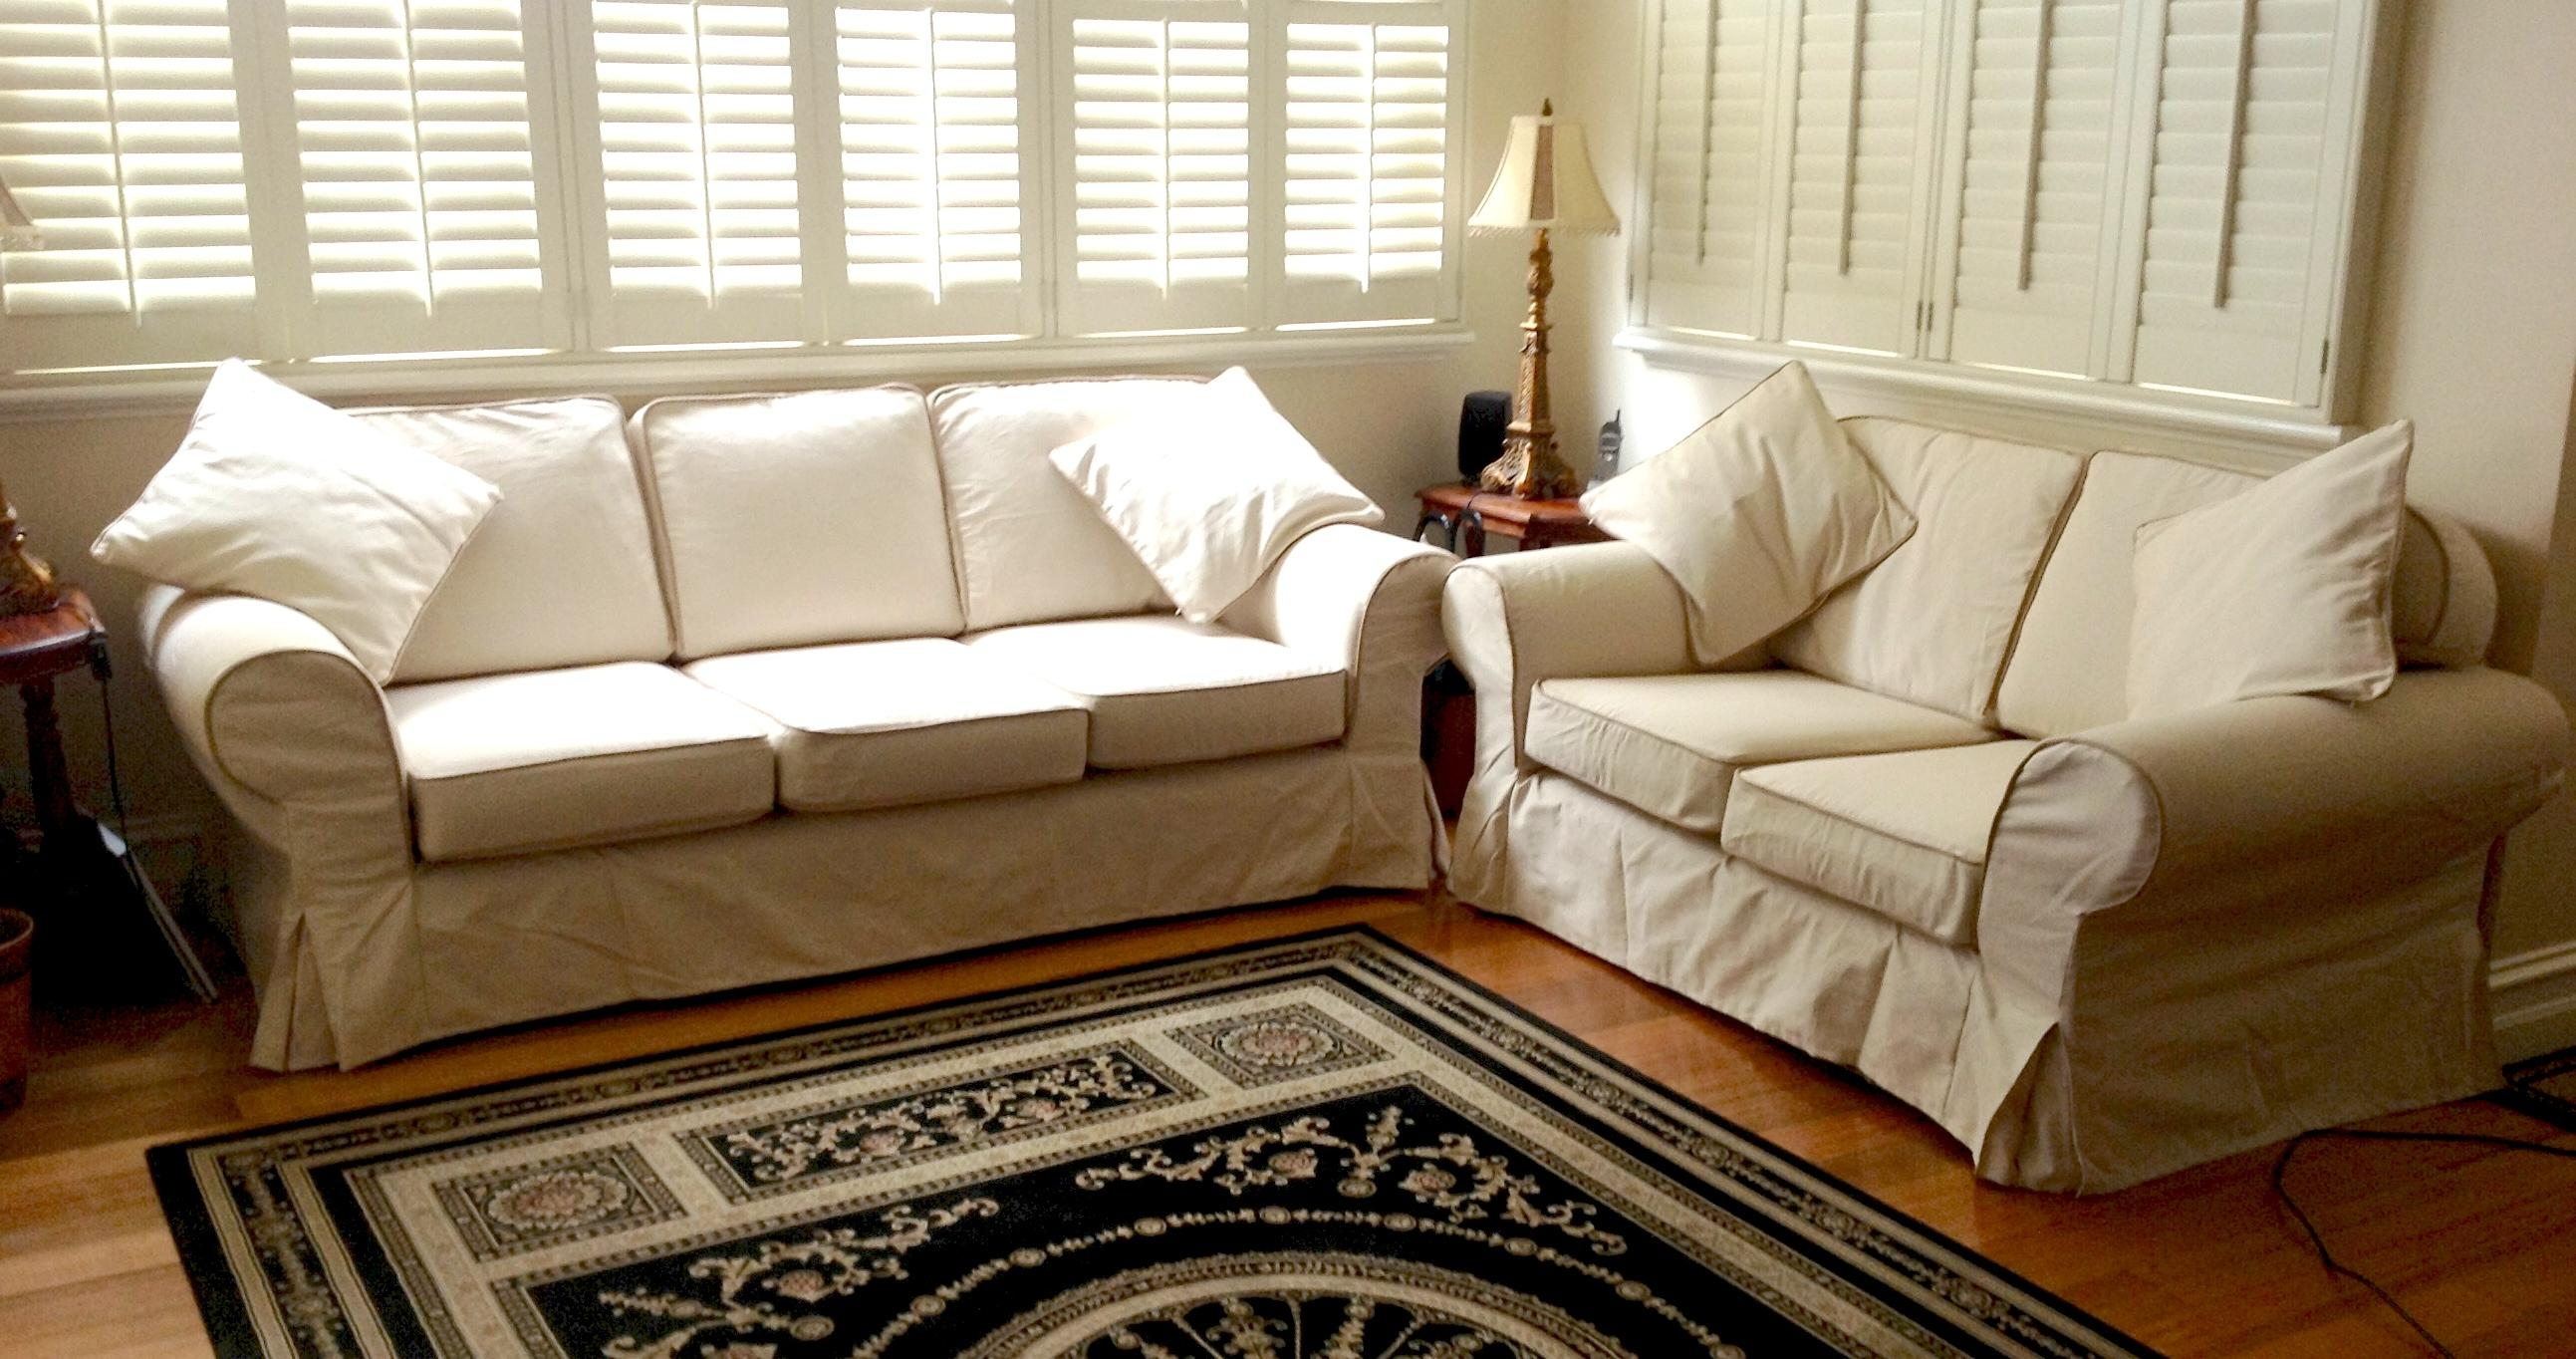 Custom Slipcovers And Couch Cover For Any Sofa Online With Covers For Sofas (View 3 of 20)